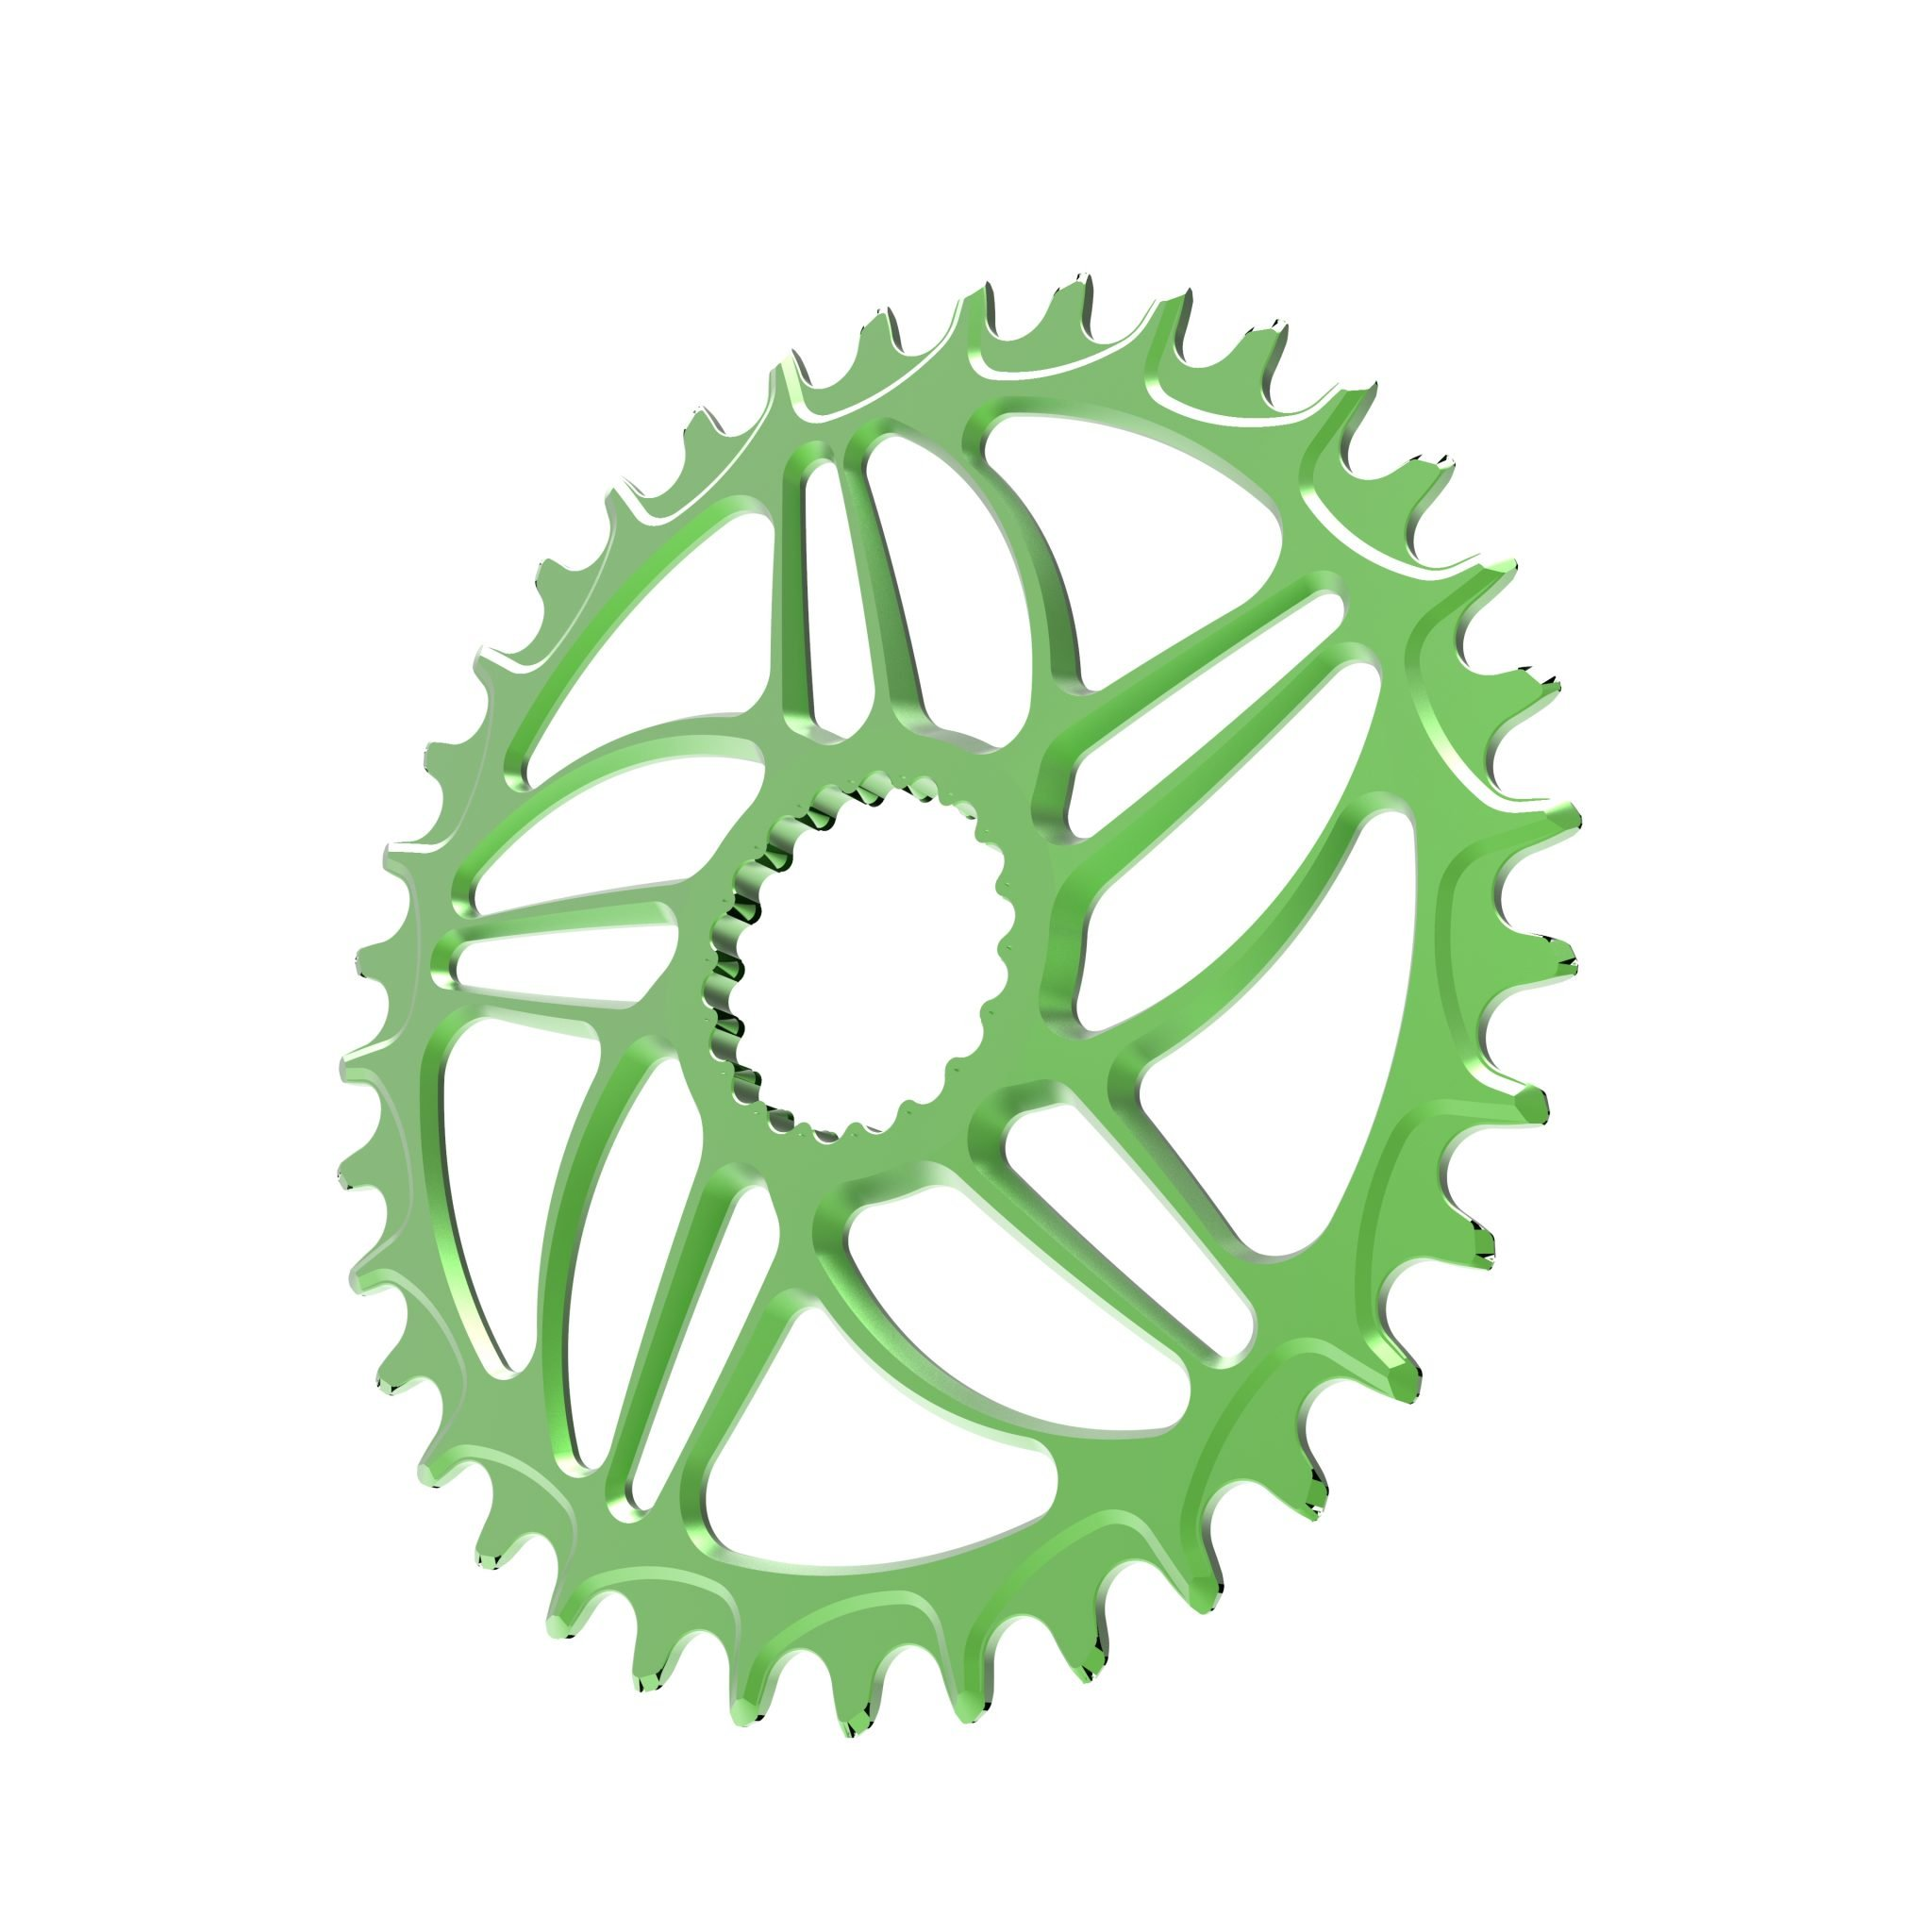 36T_R_Cannondale_BOOST_Green.395